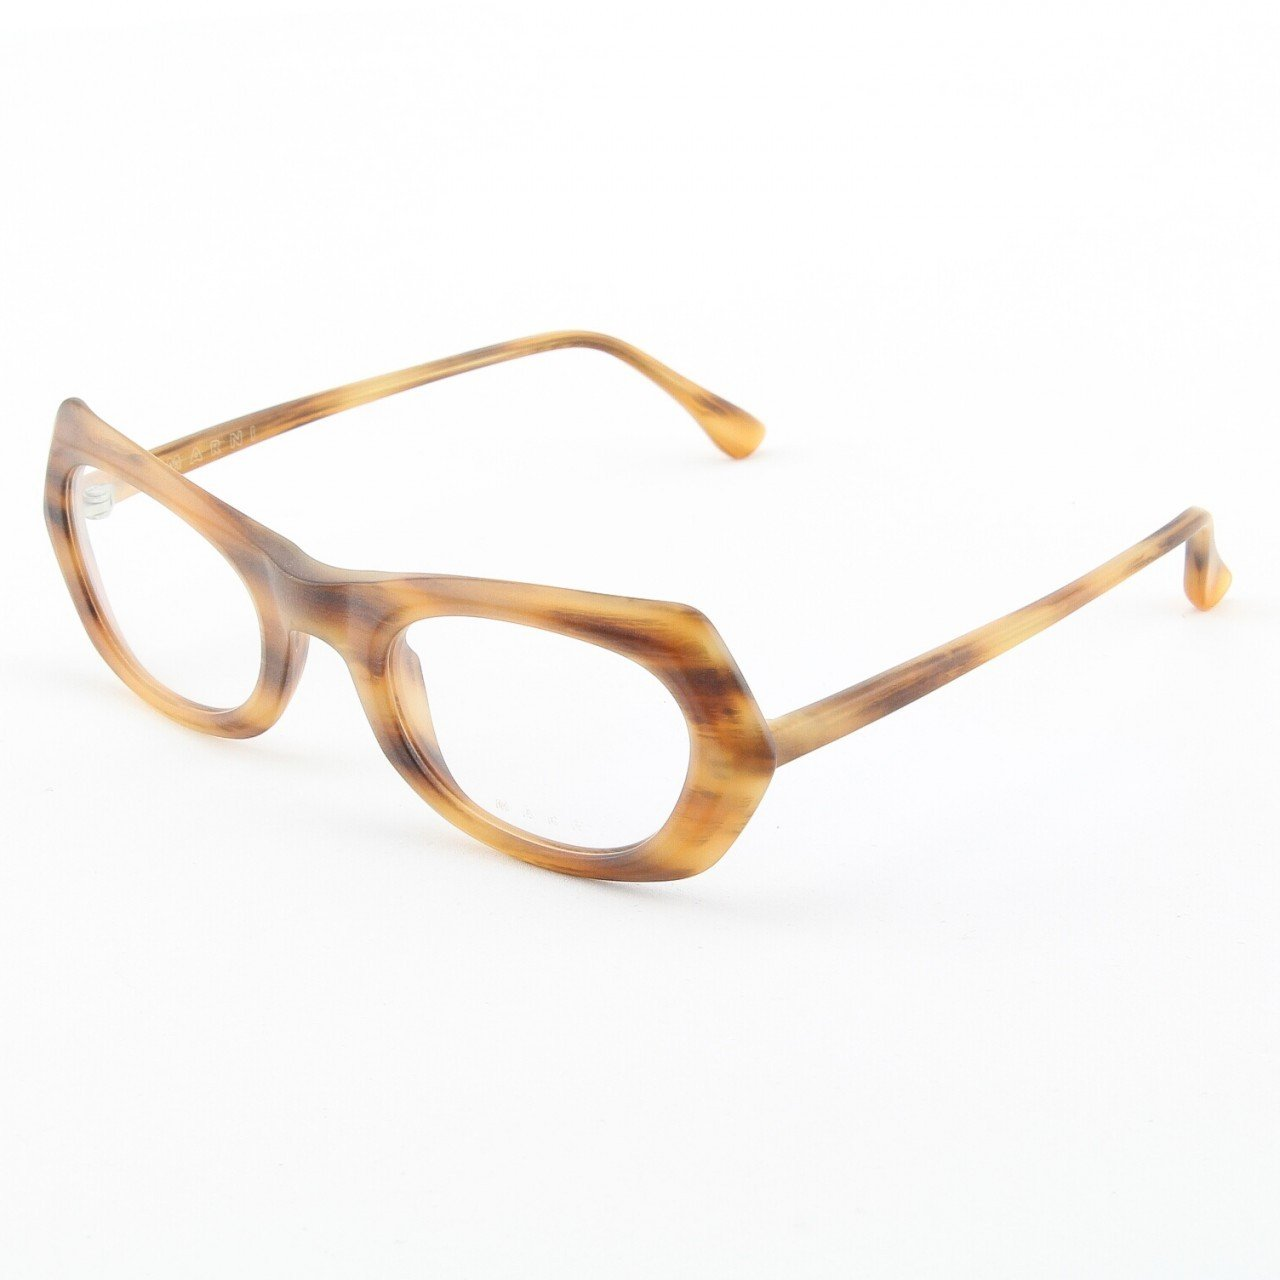 Marni MA680S Eyeglasses Col. 01 Frosted Tortoise Frame with Clear Lenses